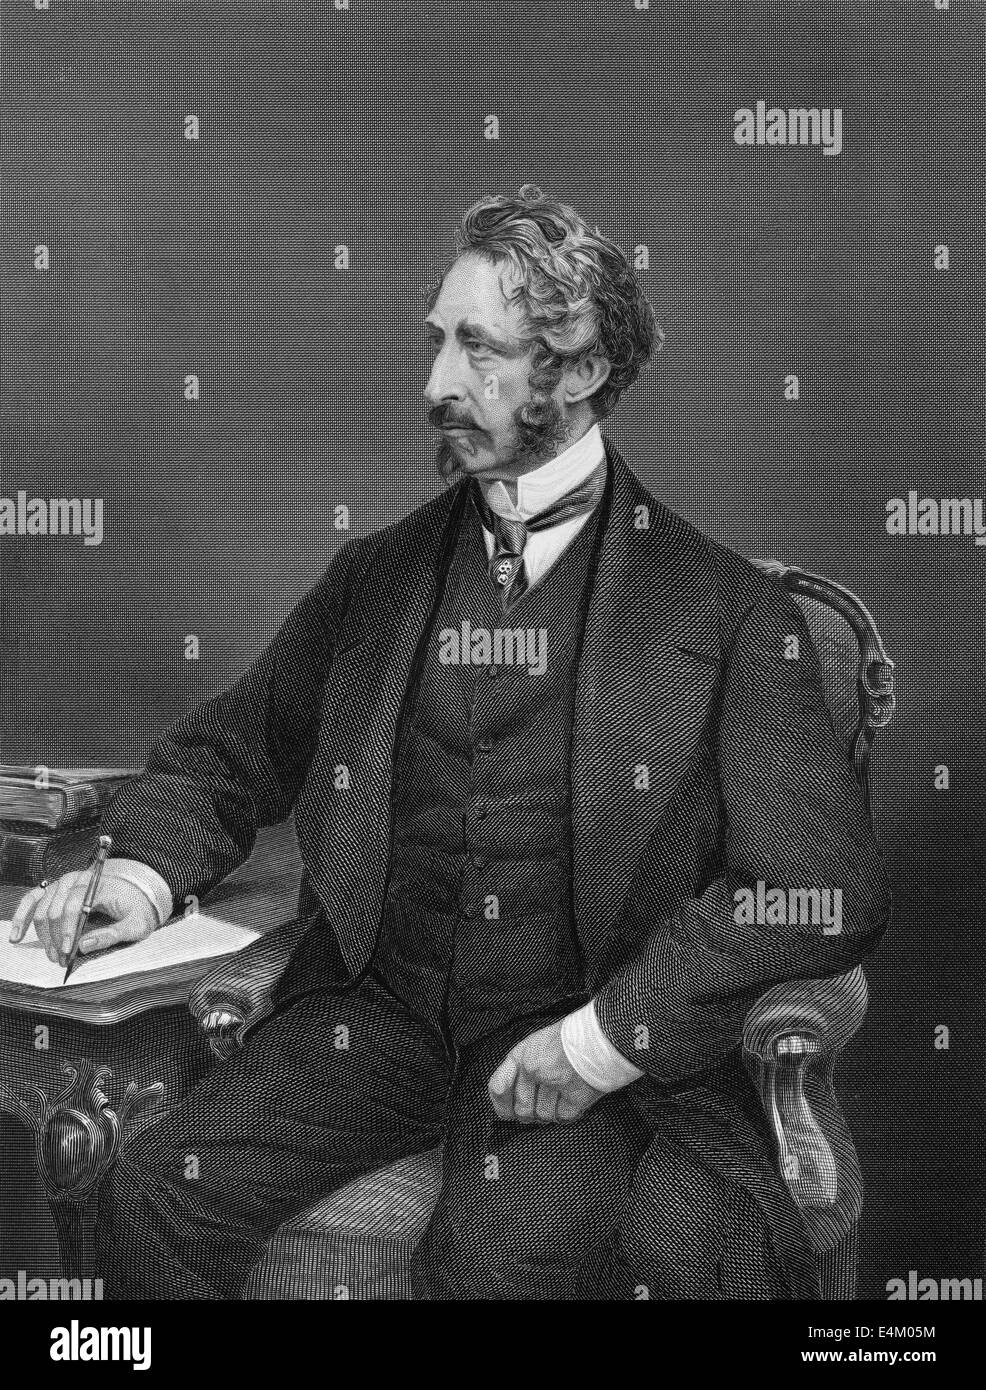 portrait of Edward George Earle Lytton Bulwer-Lytton, 1803 - 1873, an English politician, poet and playwright, Stock Photo